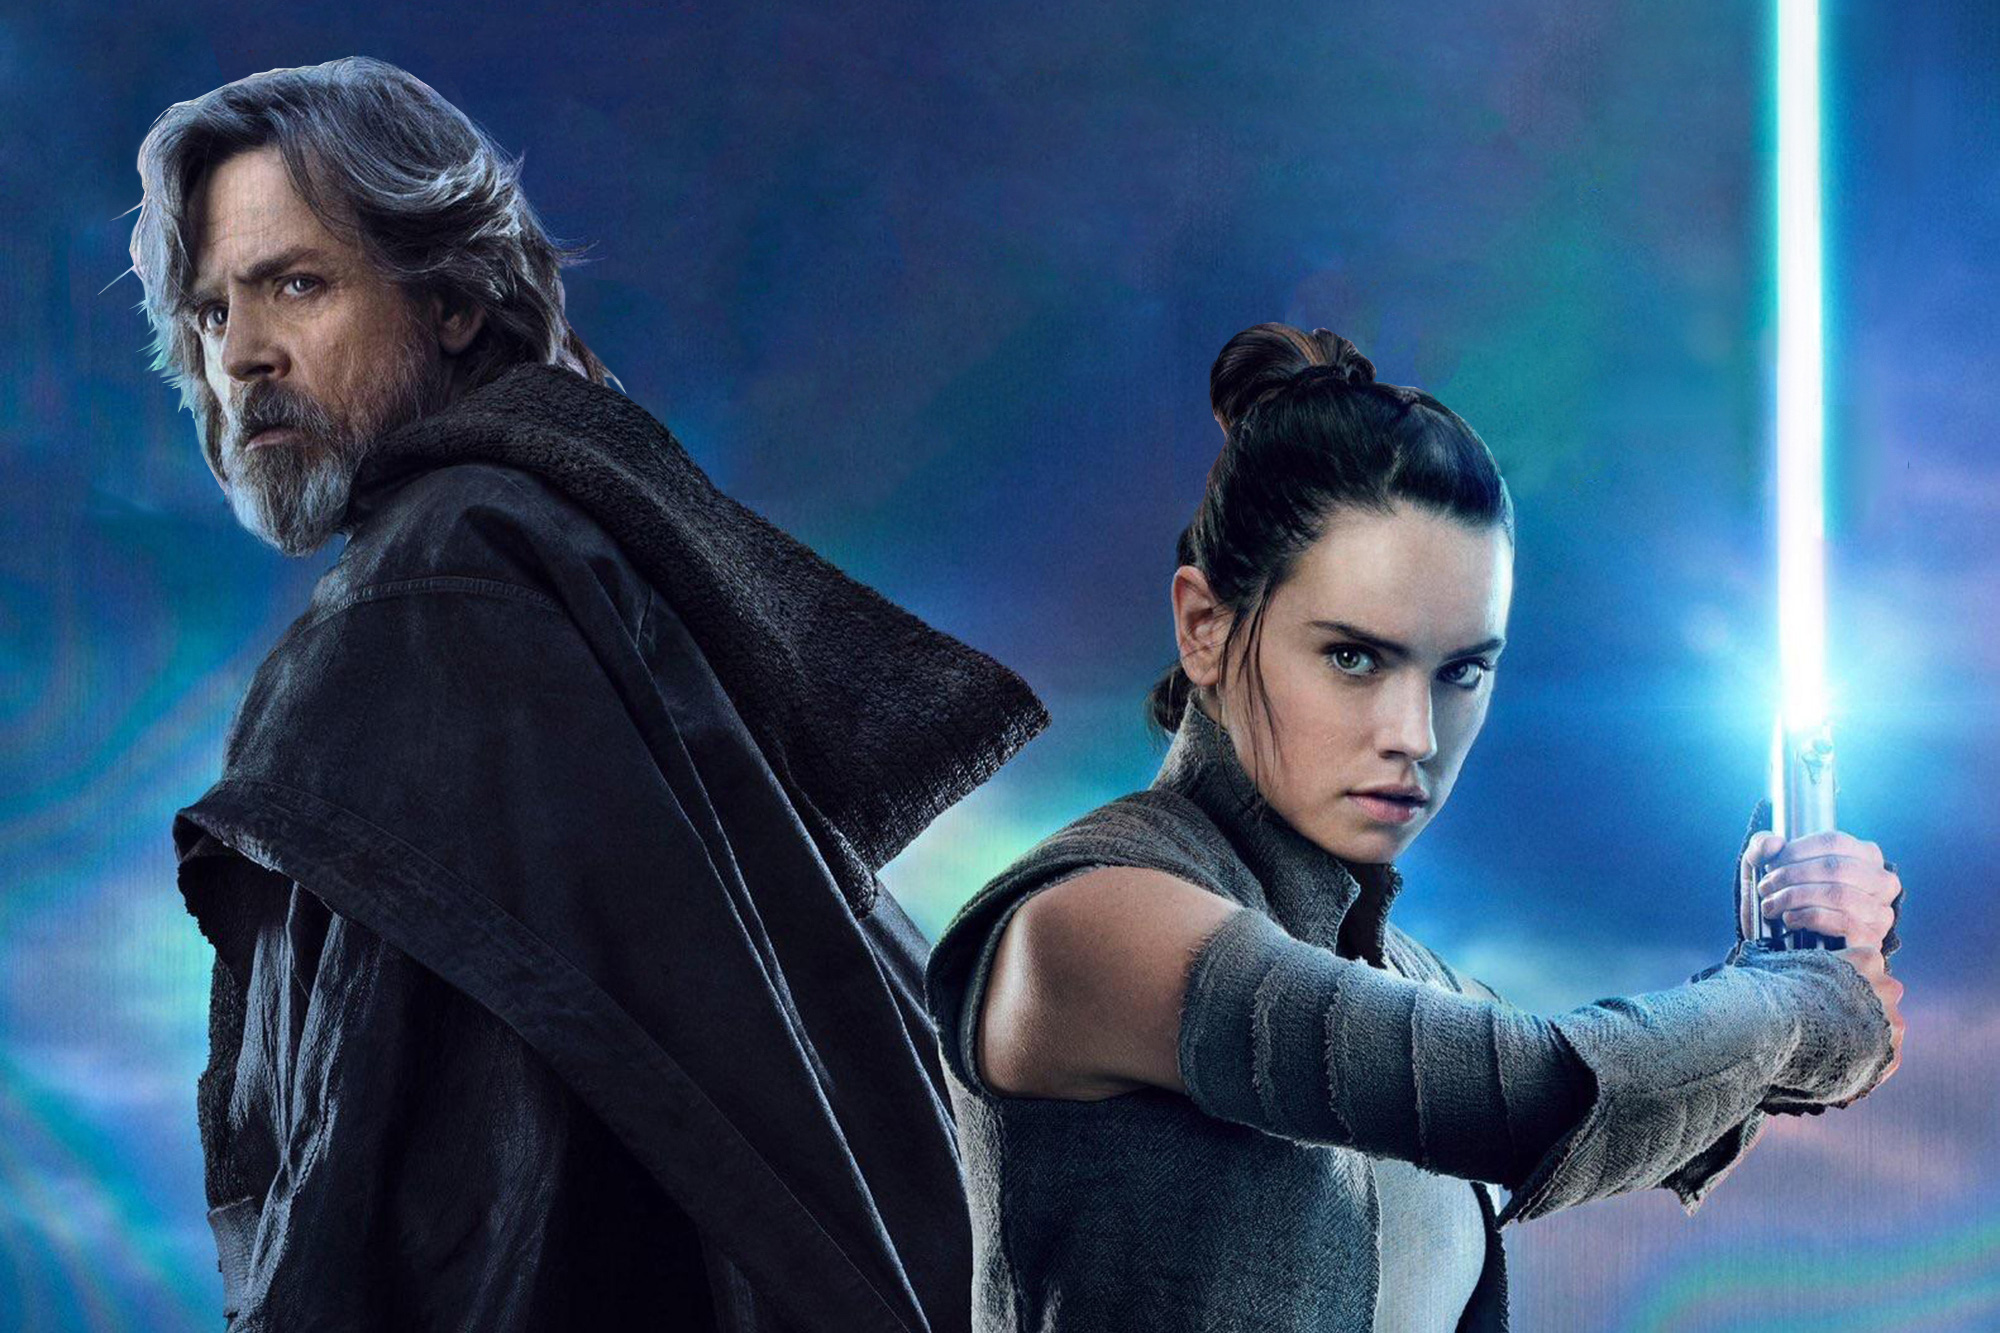 star wars rey wallpaper android